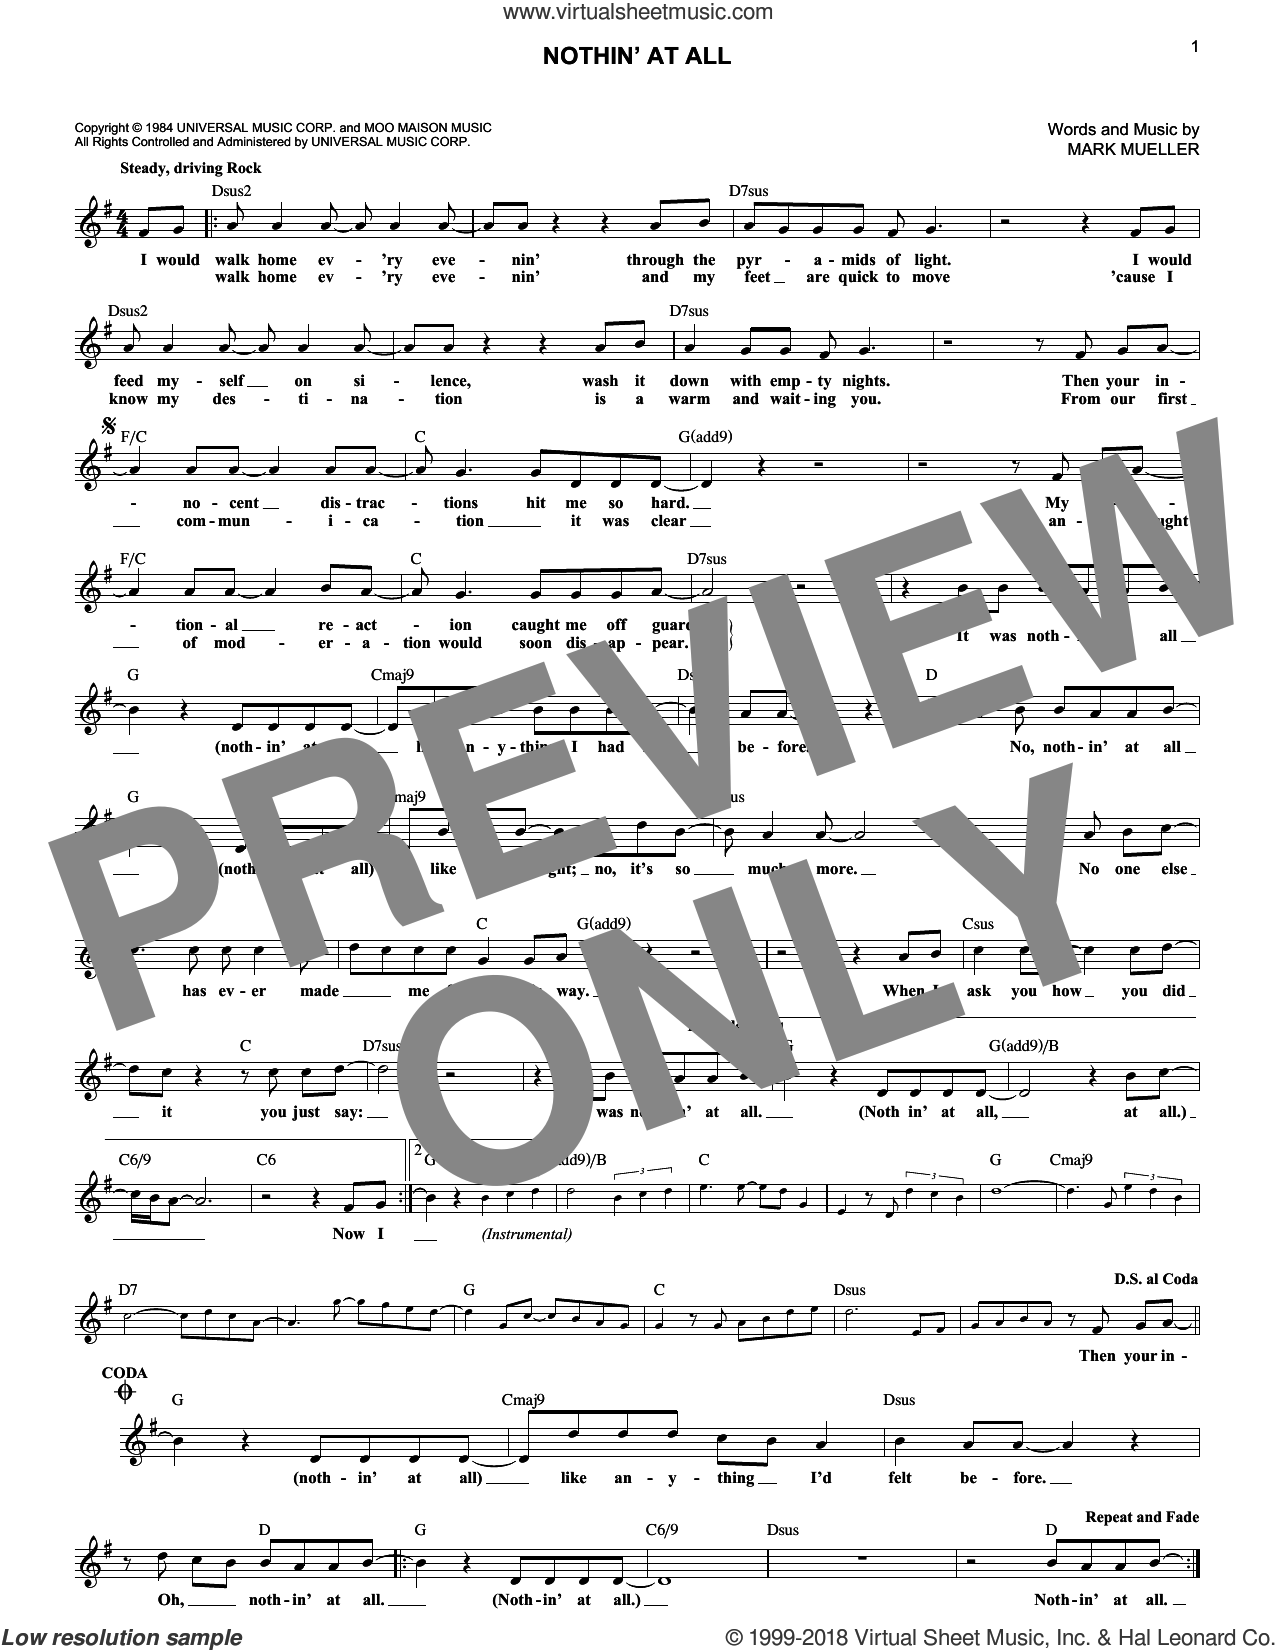 Nothin' At All sheet music for voice and other instruments (fake book) by Heart and Mark Mueller, intermediate skill level